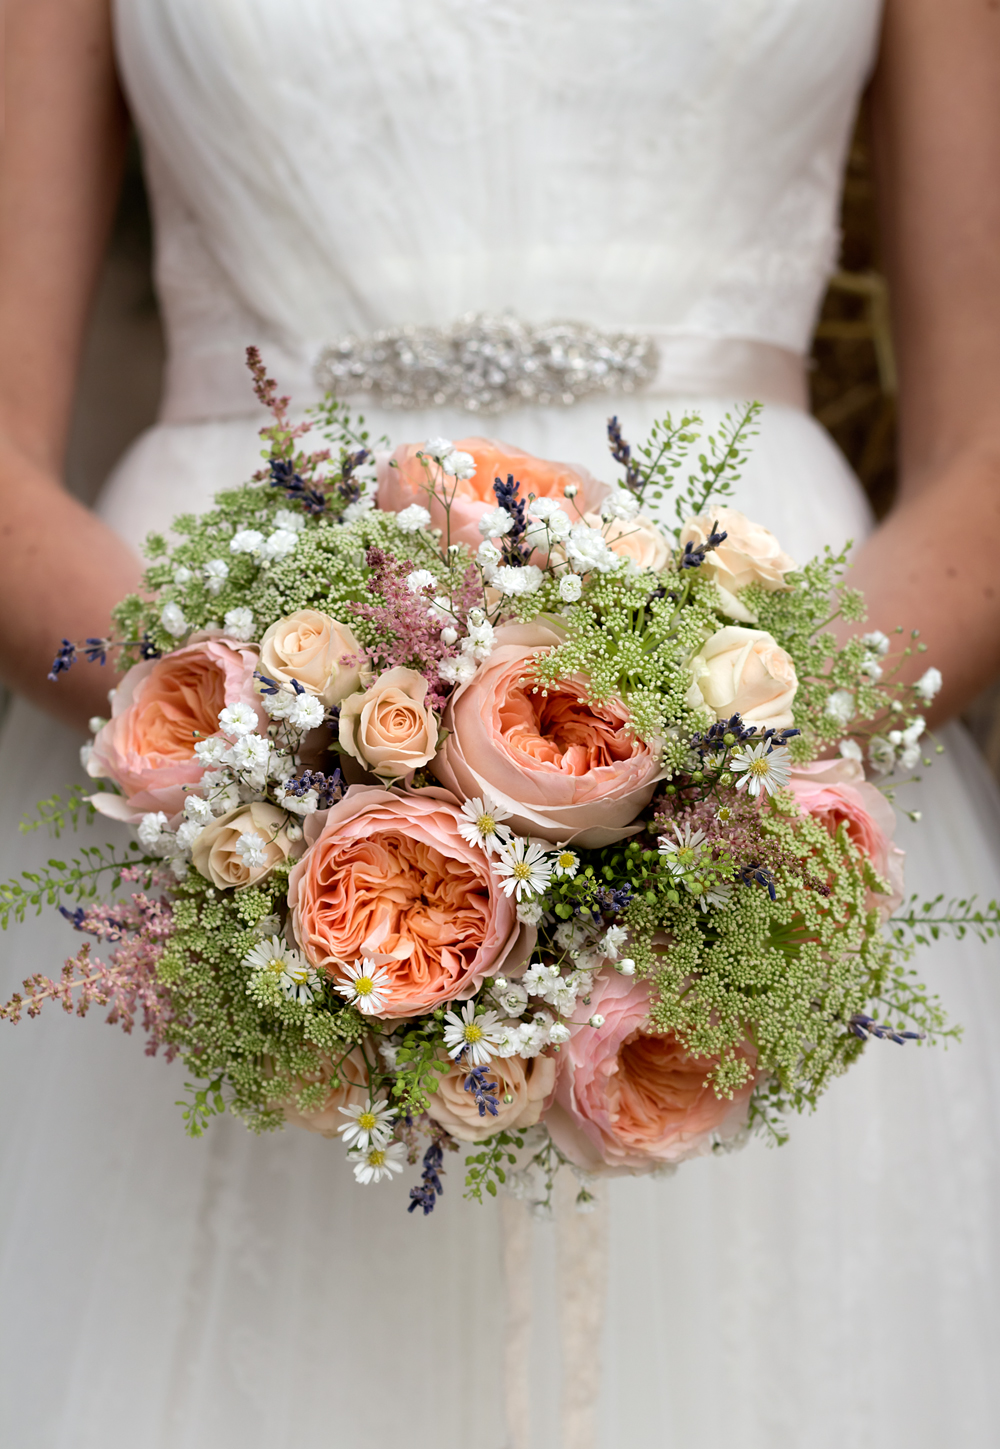 A Rustic Country Wedding at Knightor Winery - Image 25